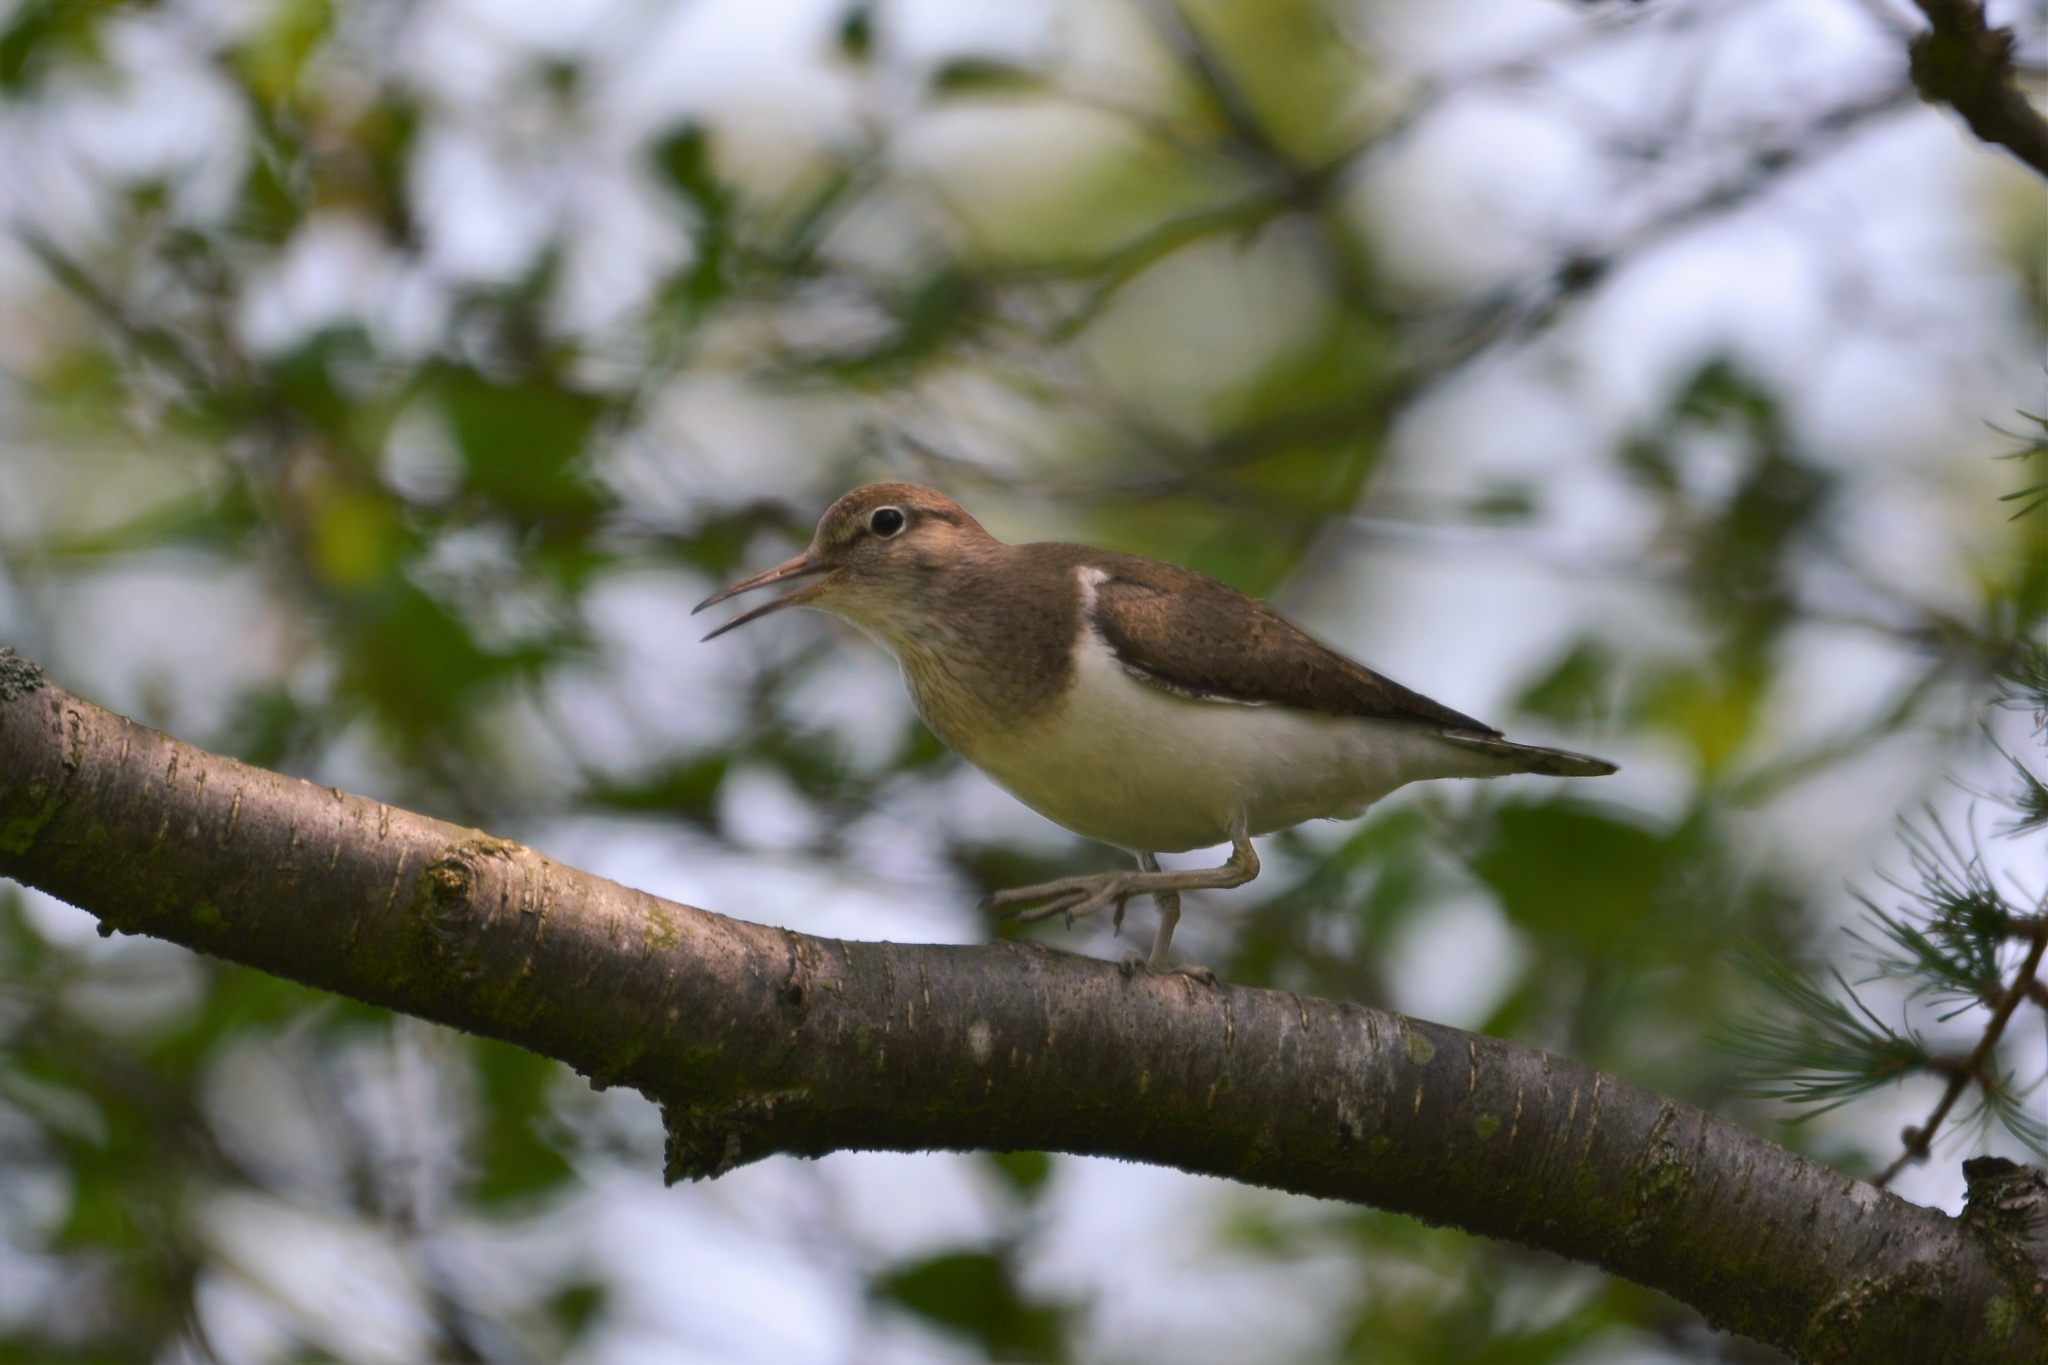 Common Sandpiper by paul.tyler.564